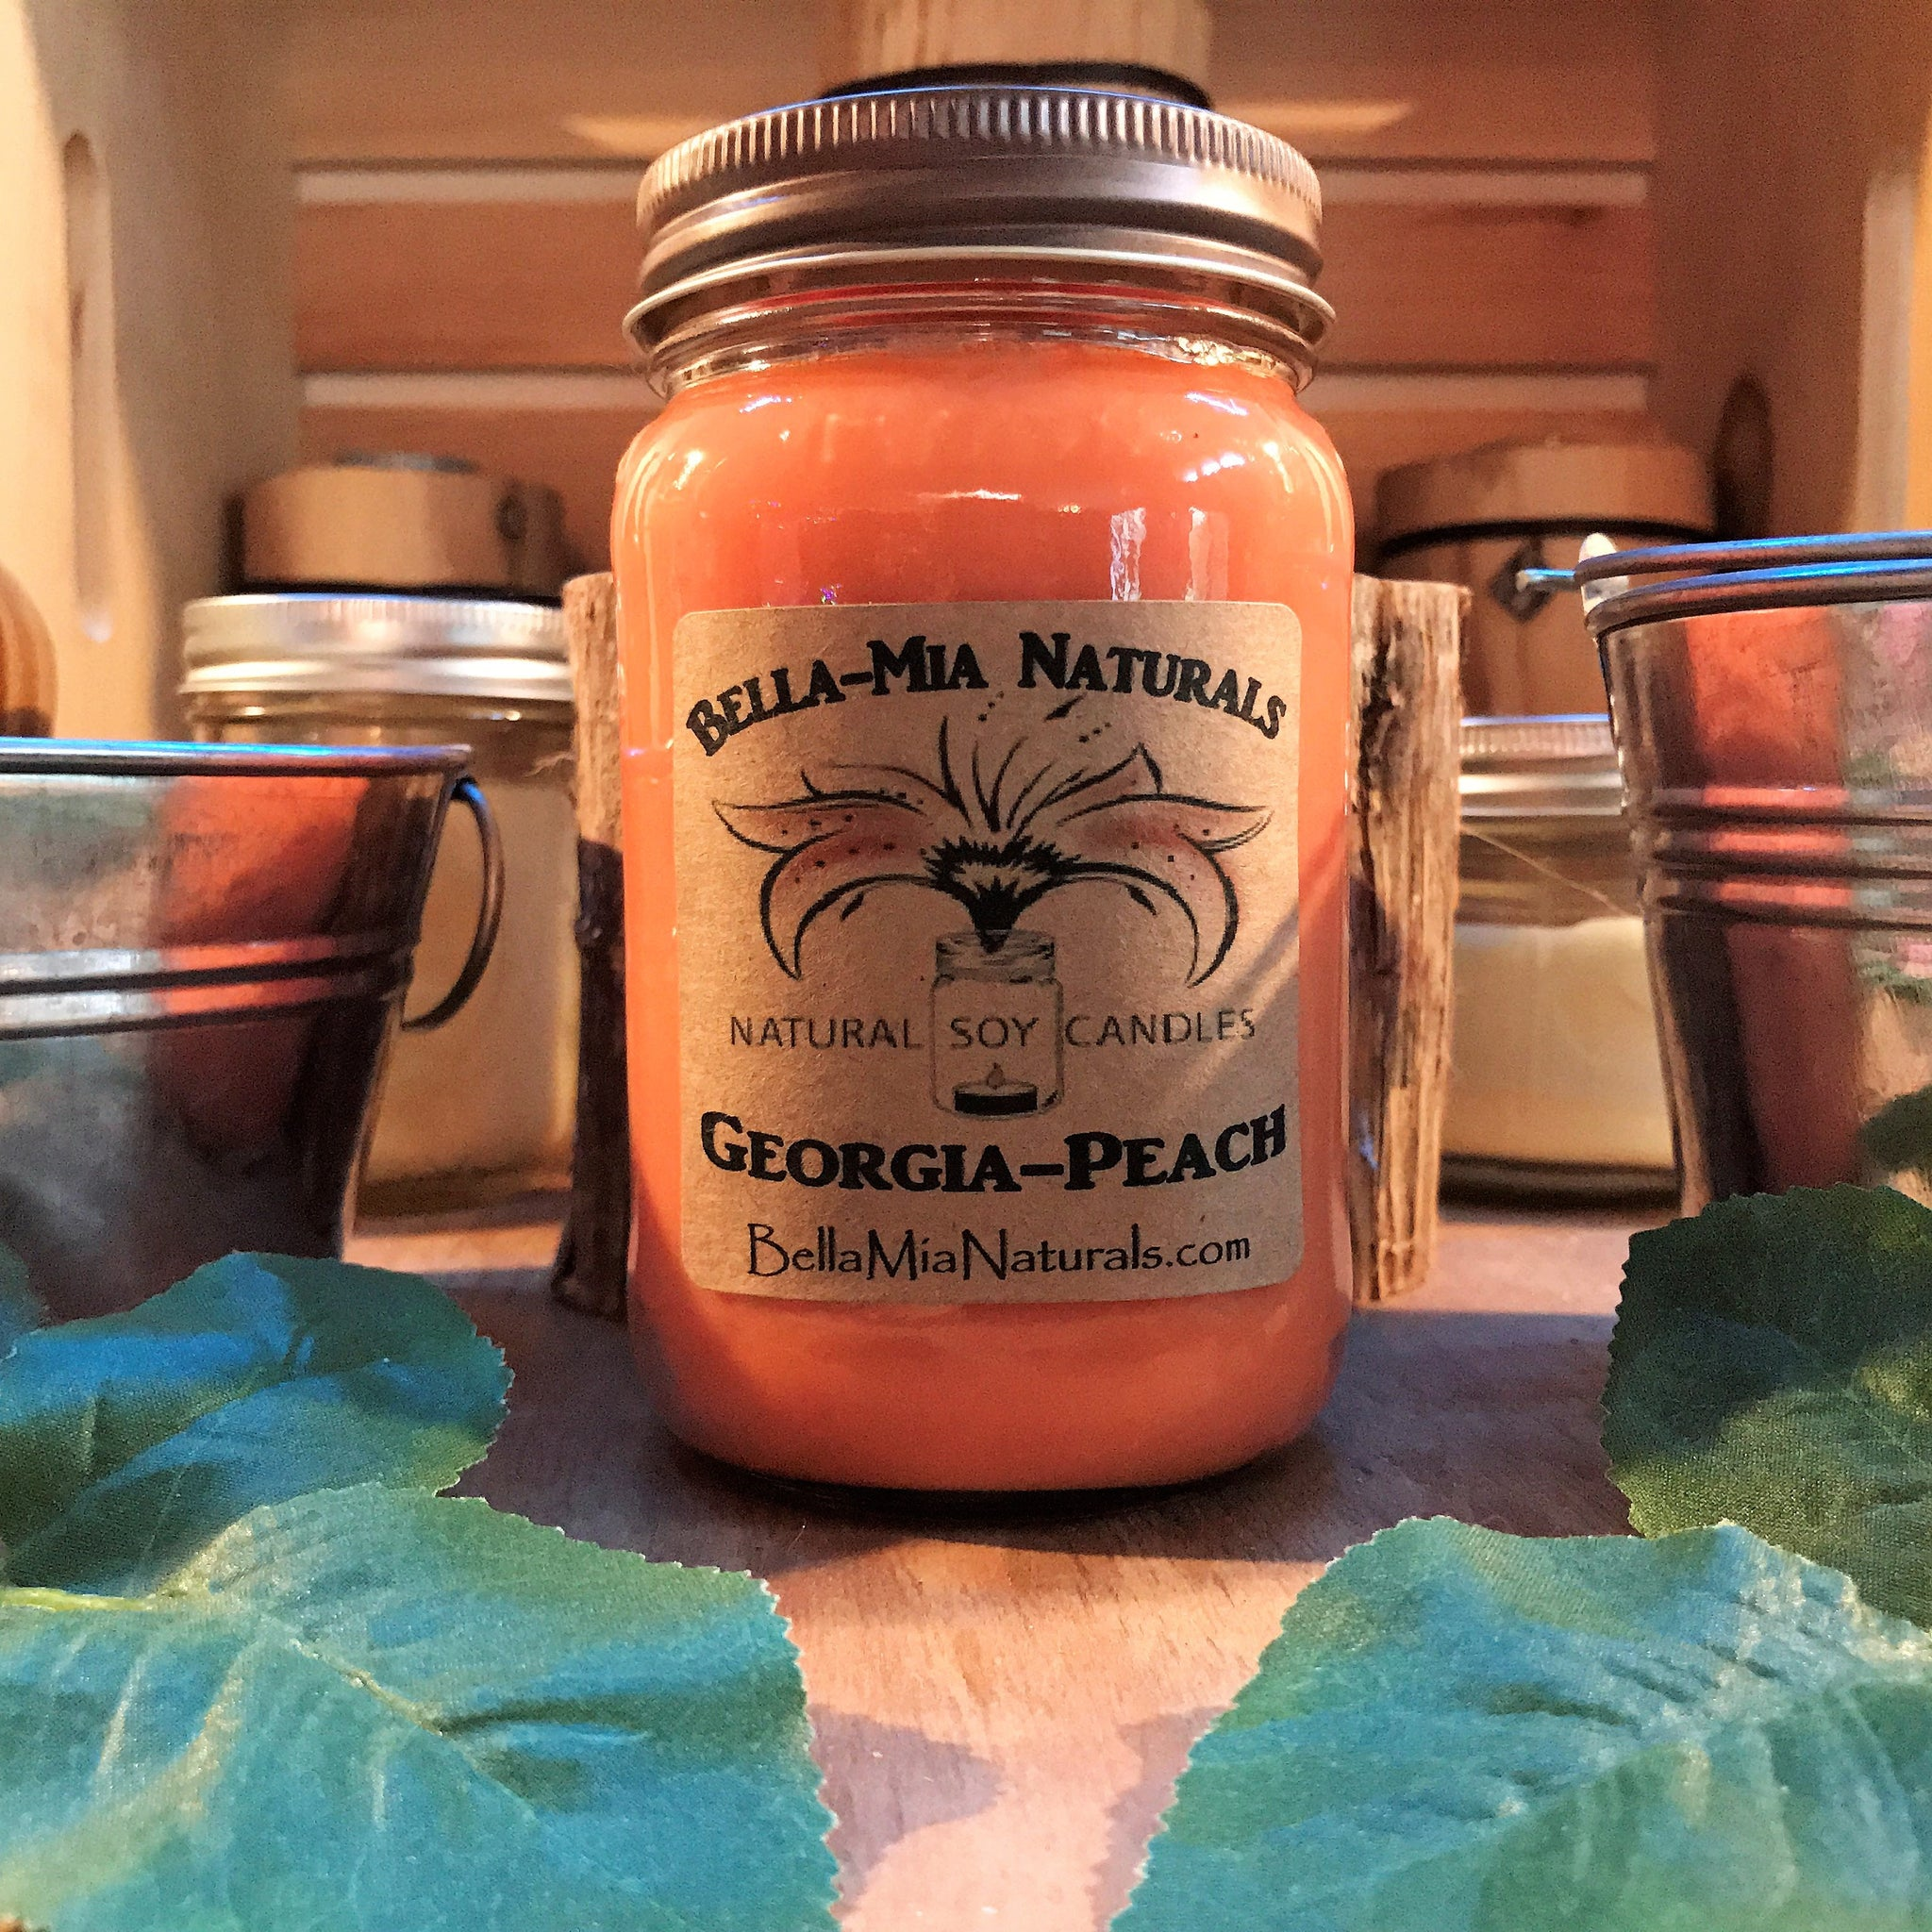 Georgia-Peach Natural Hand Poured Soy Candles